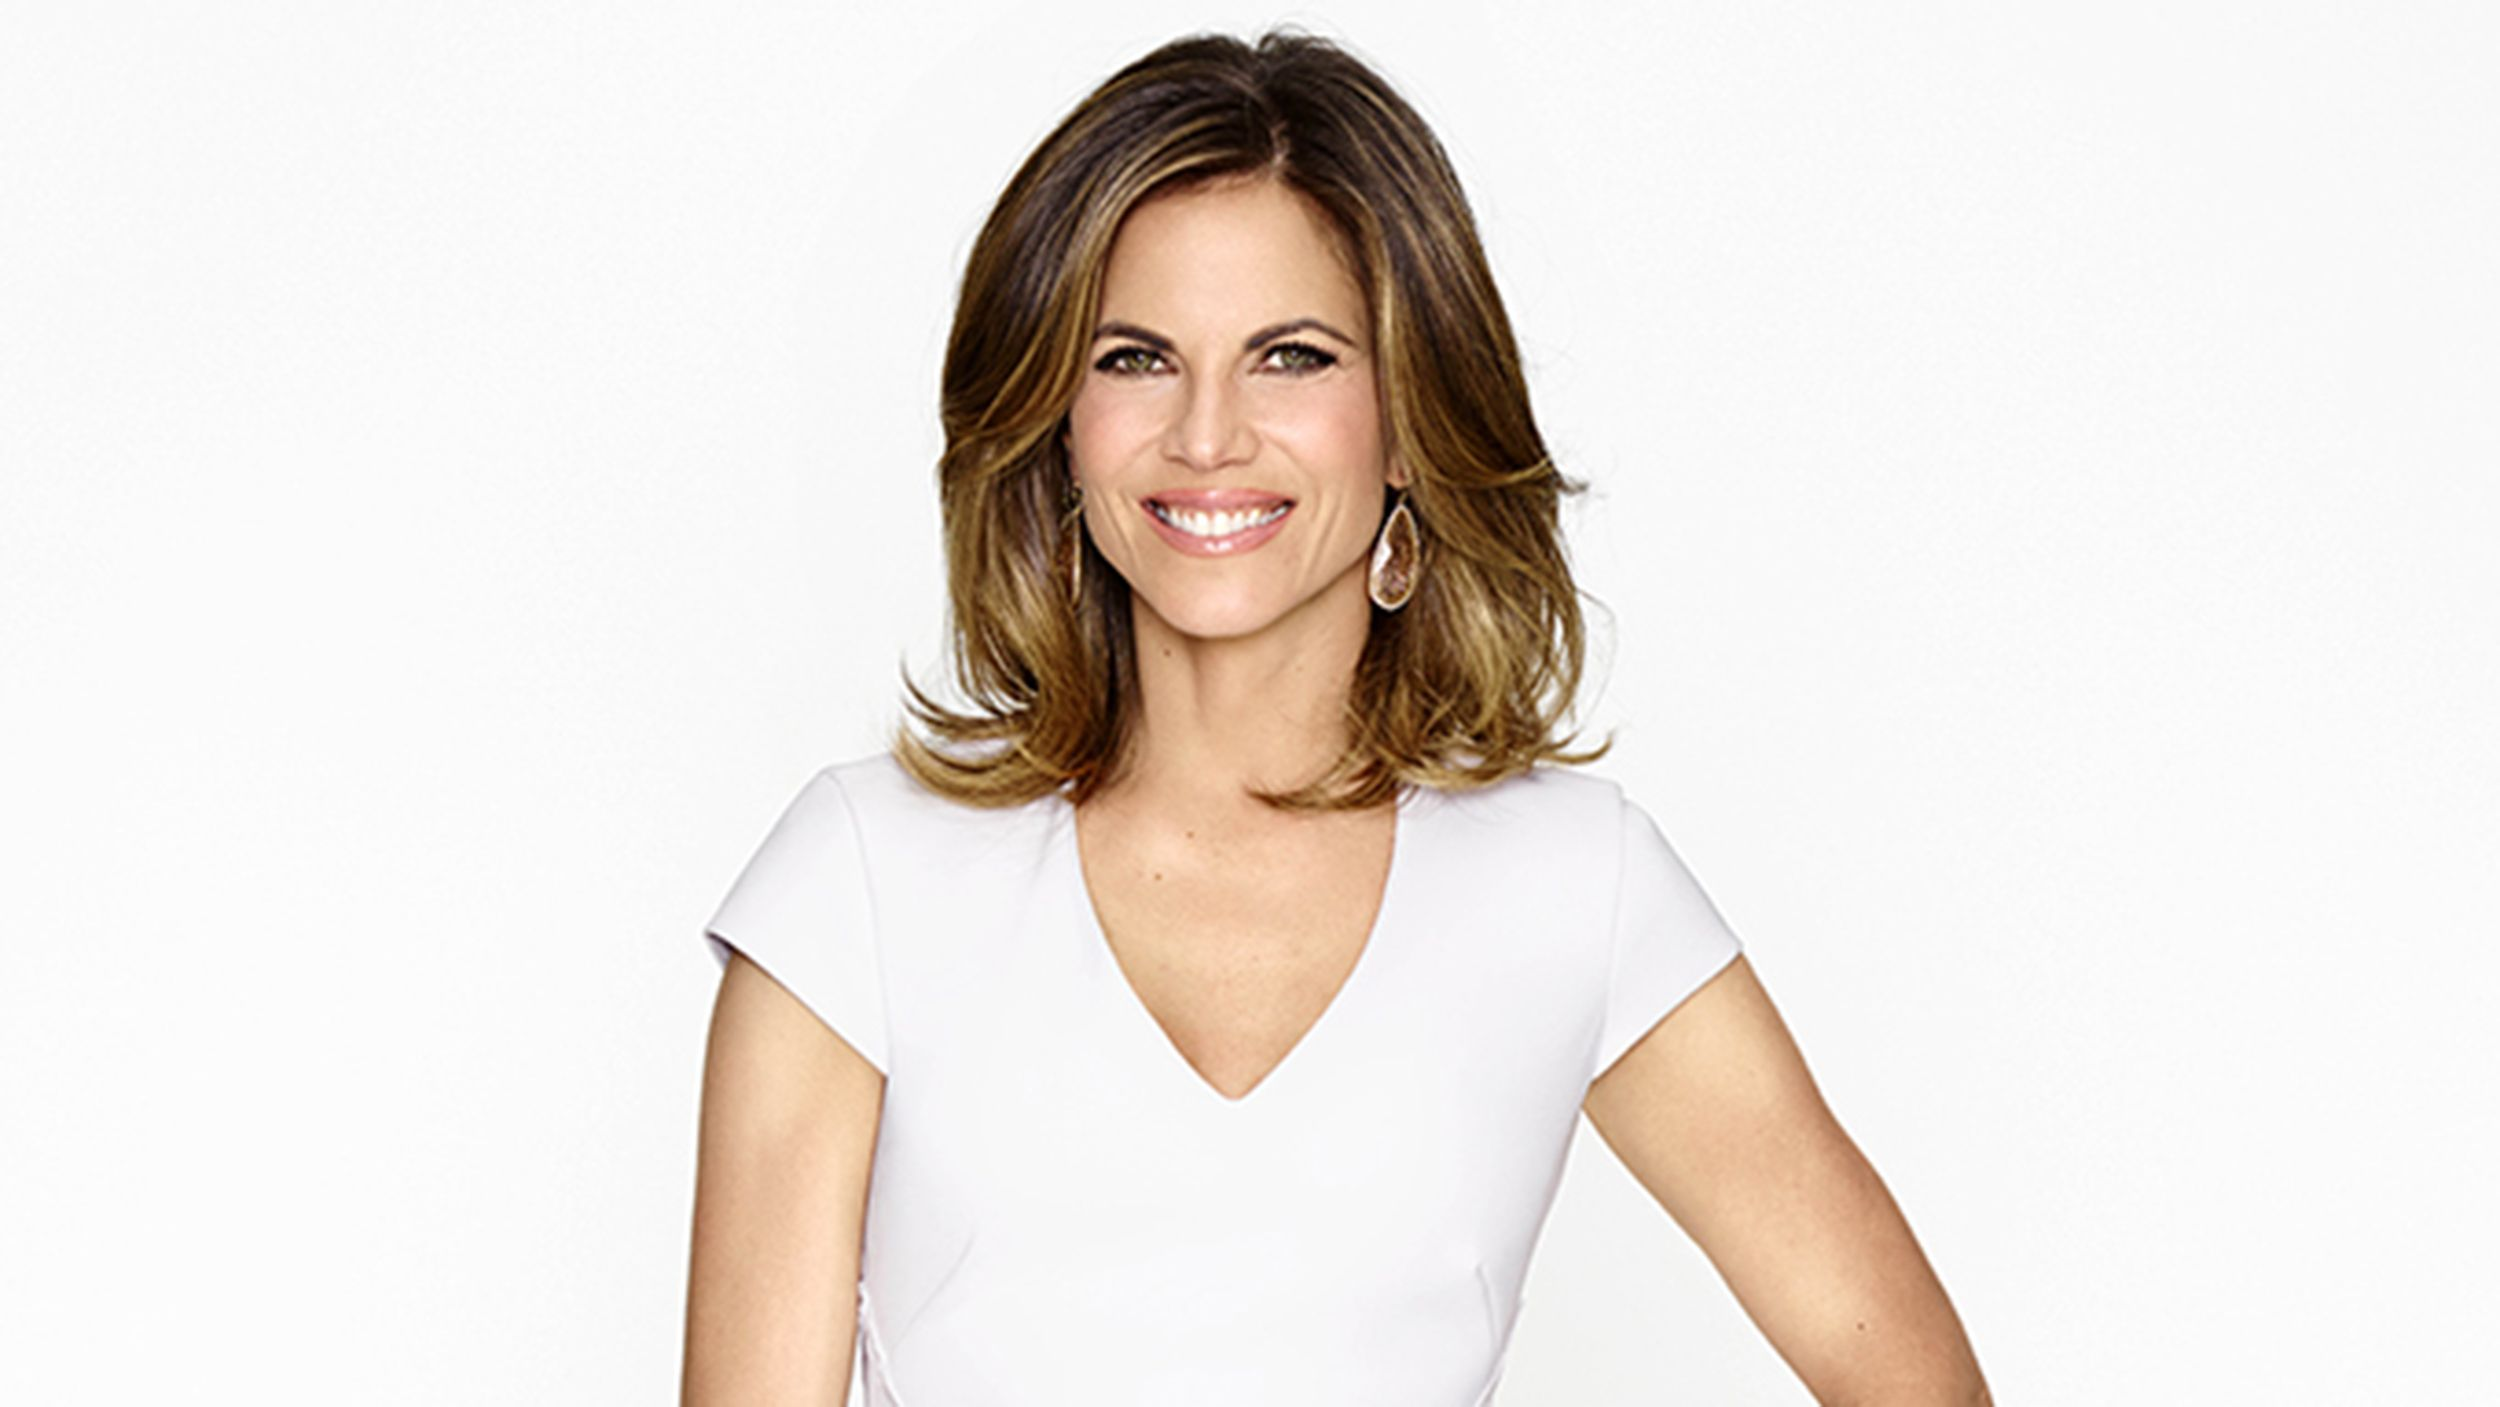 natalie morales, news anchor and co-anchor of today's third